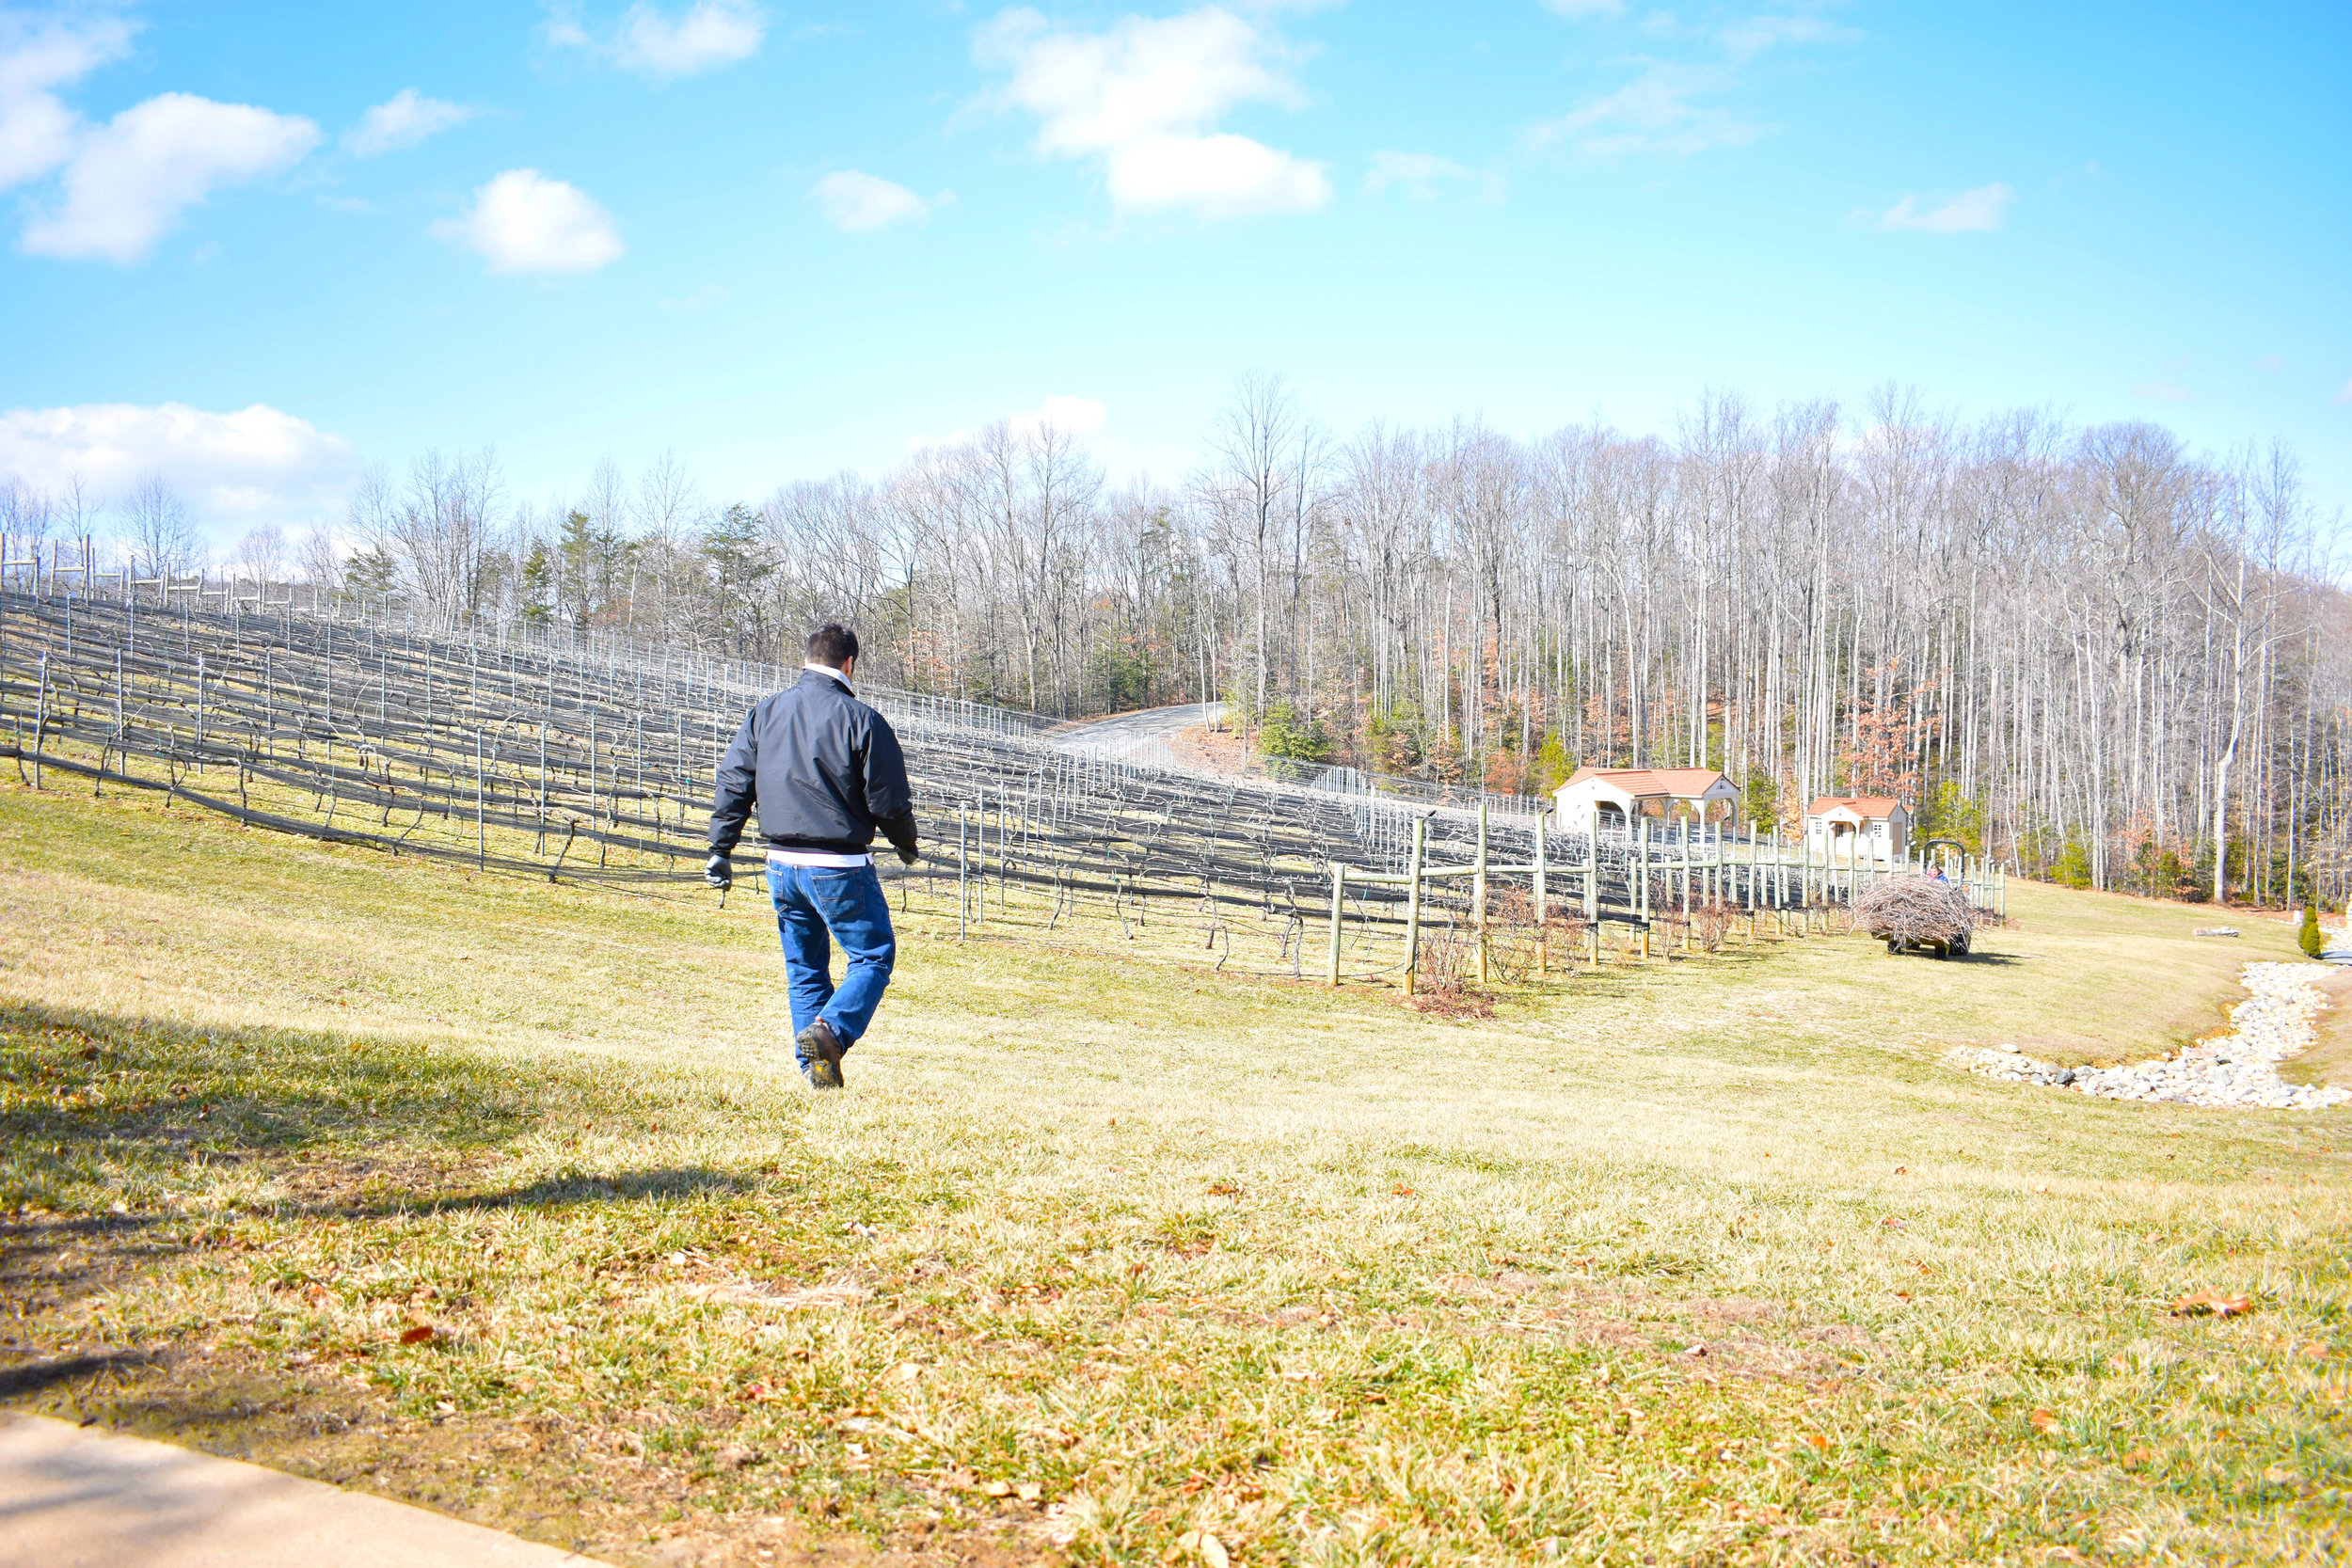 David Pagan Castaño, head winemaker at Potomac Point Vineyard and Winery in Stafford, Va., walks down a hill to greet an employee who is clearing away dead vines, Friday, Feb. 2, 2018. (Lindsey Leake/American University)